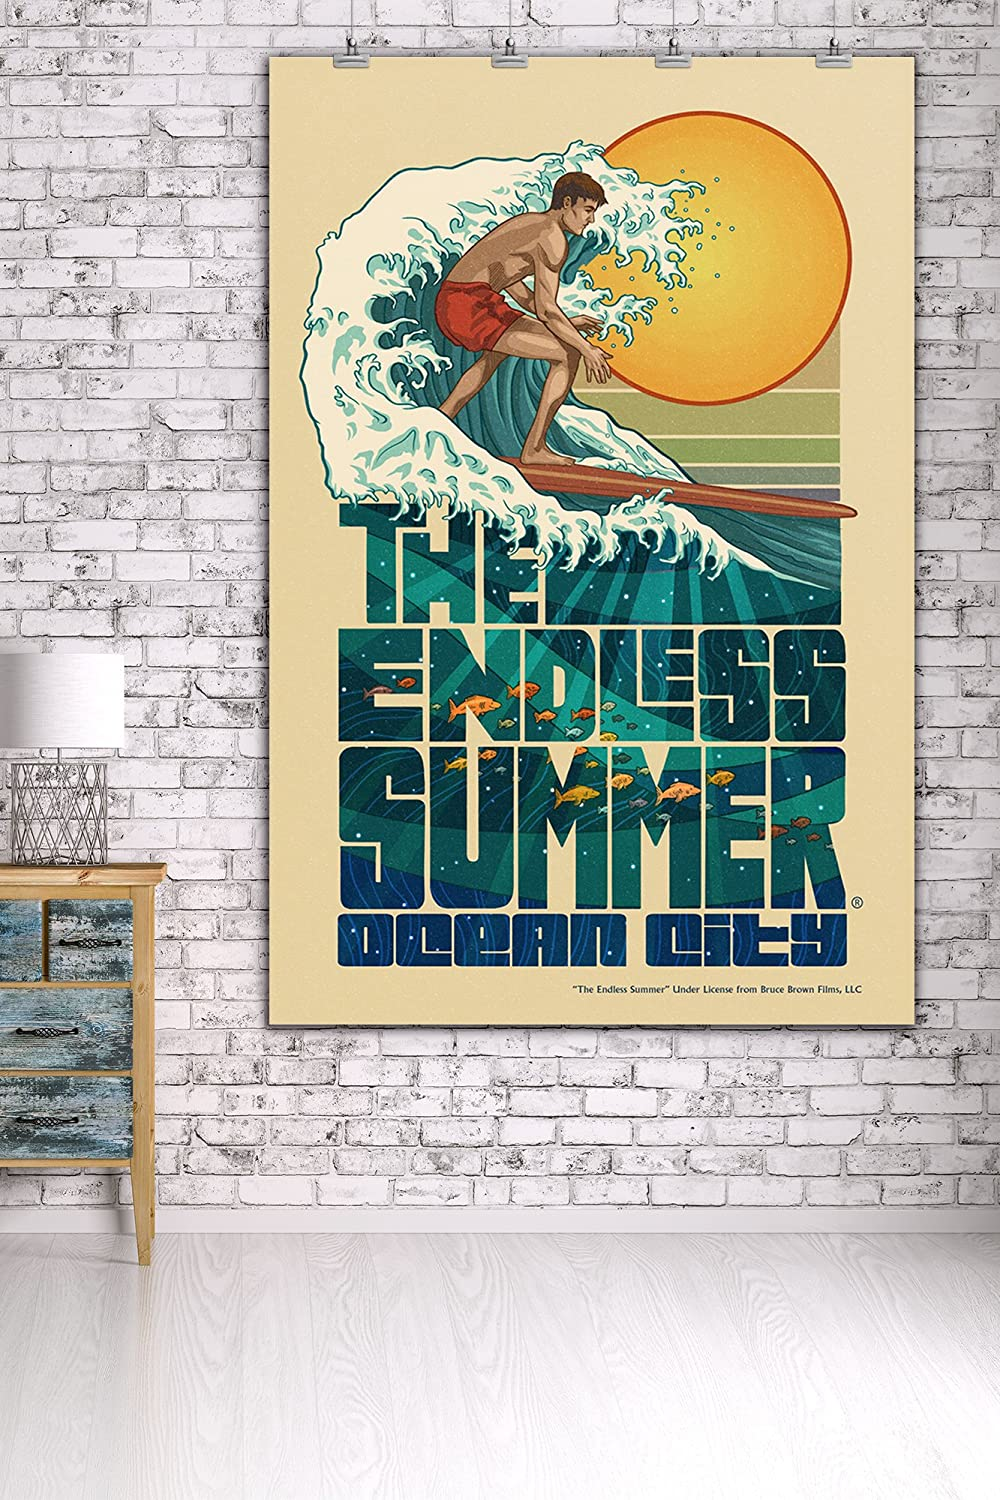 Amazon.com: Ocean City, New Jersey - The Endless Summer - Underwater Scene (11x14 Double-Matted Art Print, Wall Decor Ready to Frame): Arts, Crafts & Sewing